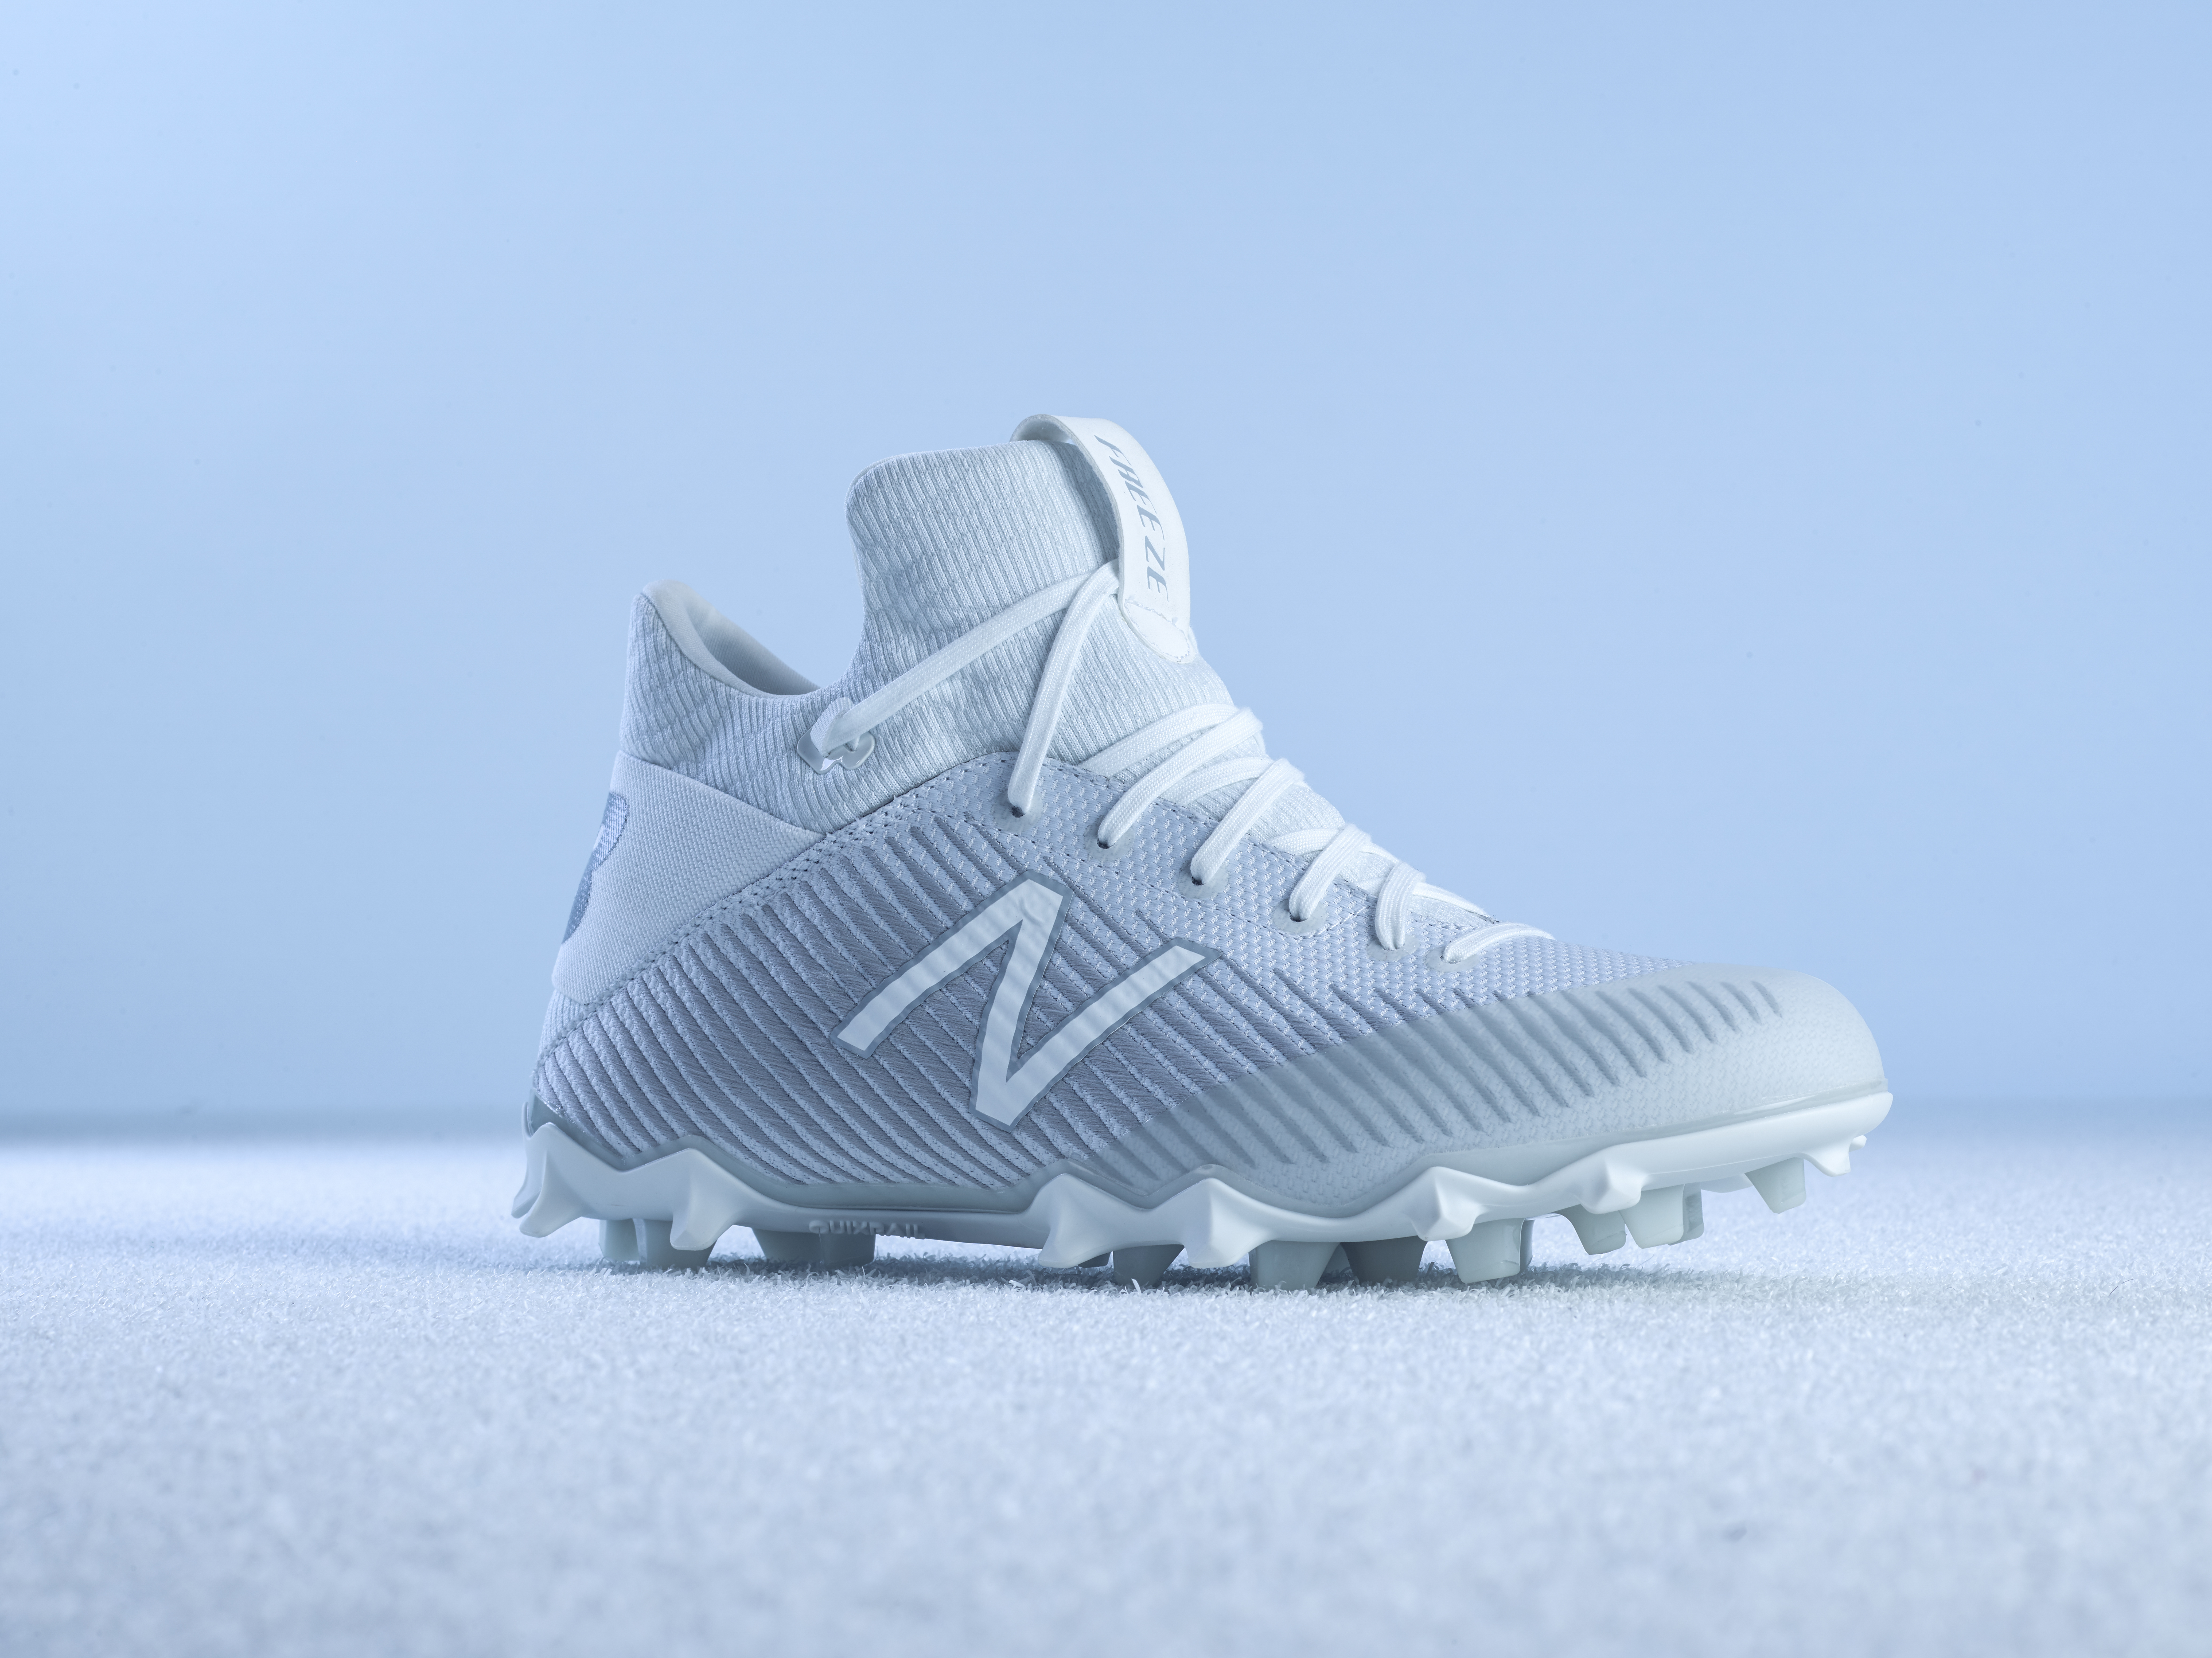 41490477c The Freeze 2.0 delivers incredible traction on the field thanks to New  Balance's QuikRail stud design. QuikRail was designed to provide maximum  traction at ...